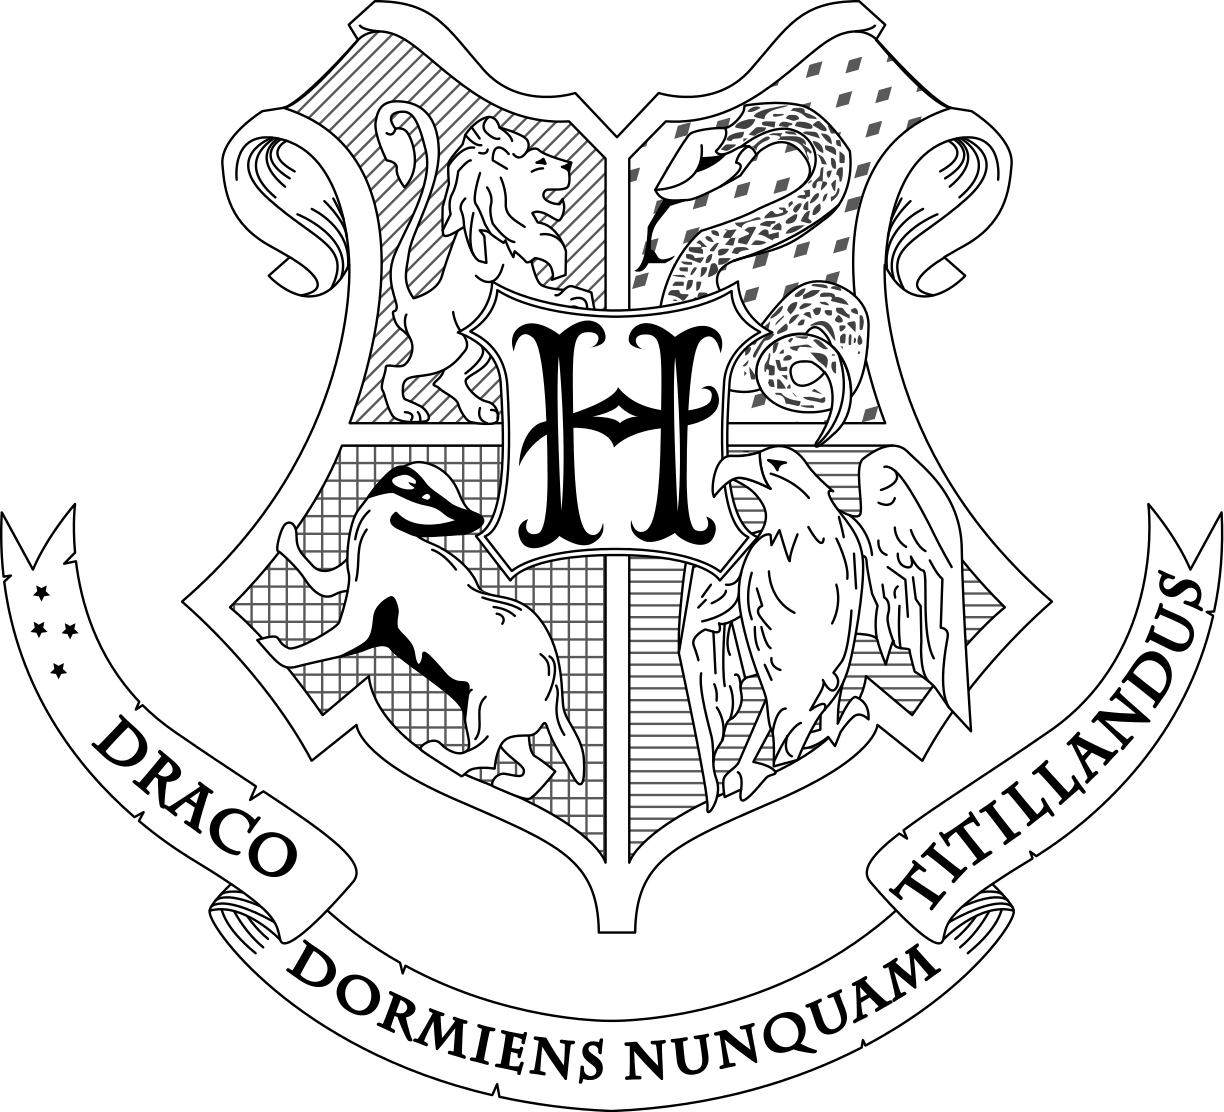 Harry potter house symbols clipart image royalty free library Hogwarts coat of arms. Draco dormiens nunquam titillandus - A ... image royalty free library